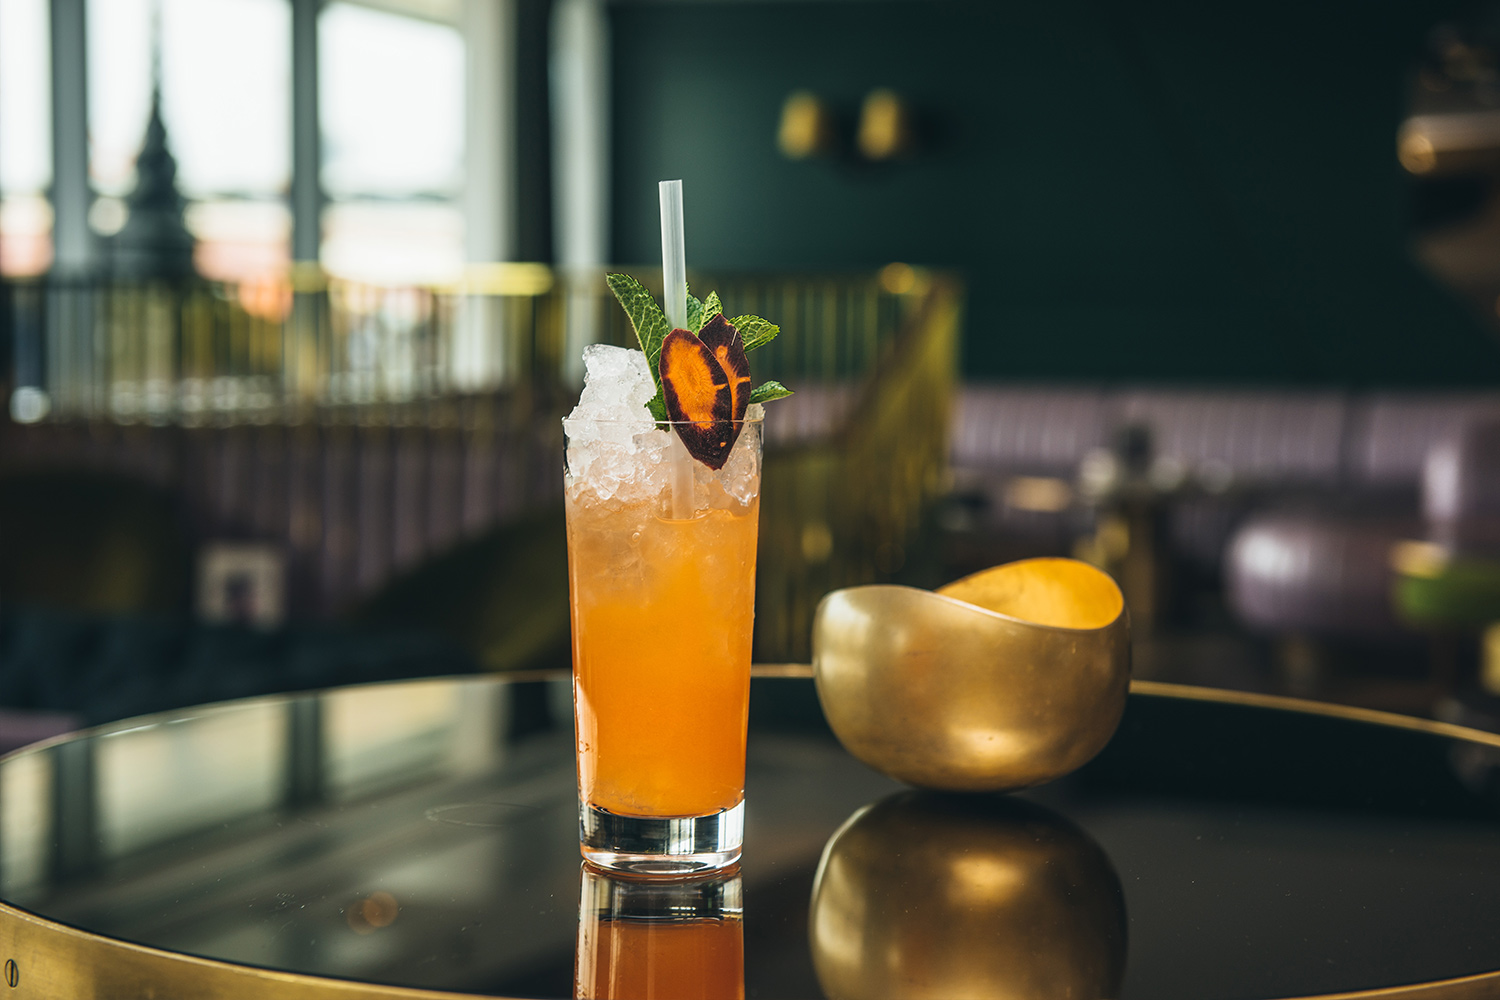 Botany inspired modern cocktails at Mr Lyan's World's Best Bar, London cocktail bar Dandelyan at Mondrian Hotel on the Southbank, which will close after four years and holding World's Best Bar